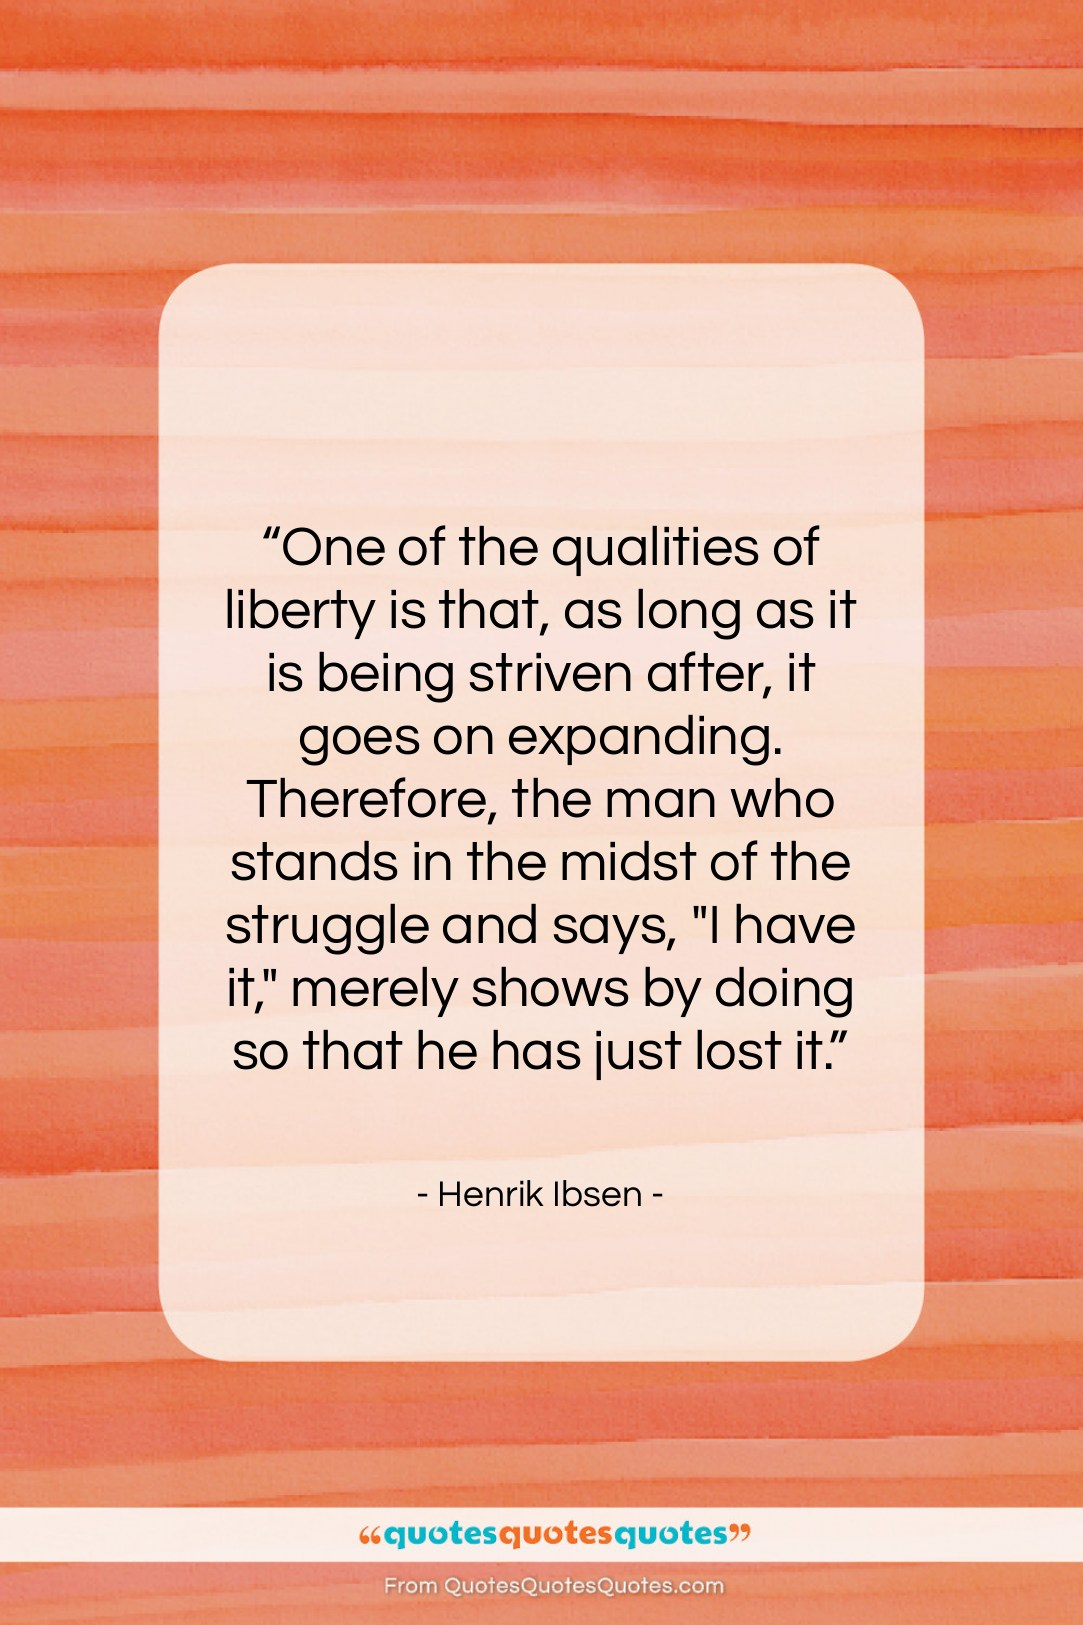 """Henrik Ibsen quote: """"One of the qualities of liberty is…""""- at QuotesQuotesQuotes.com"""